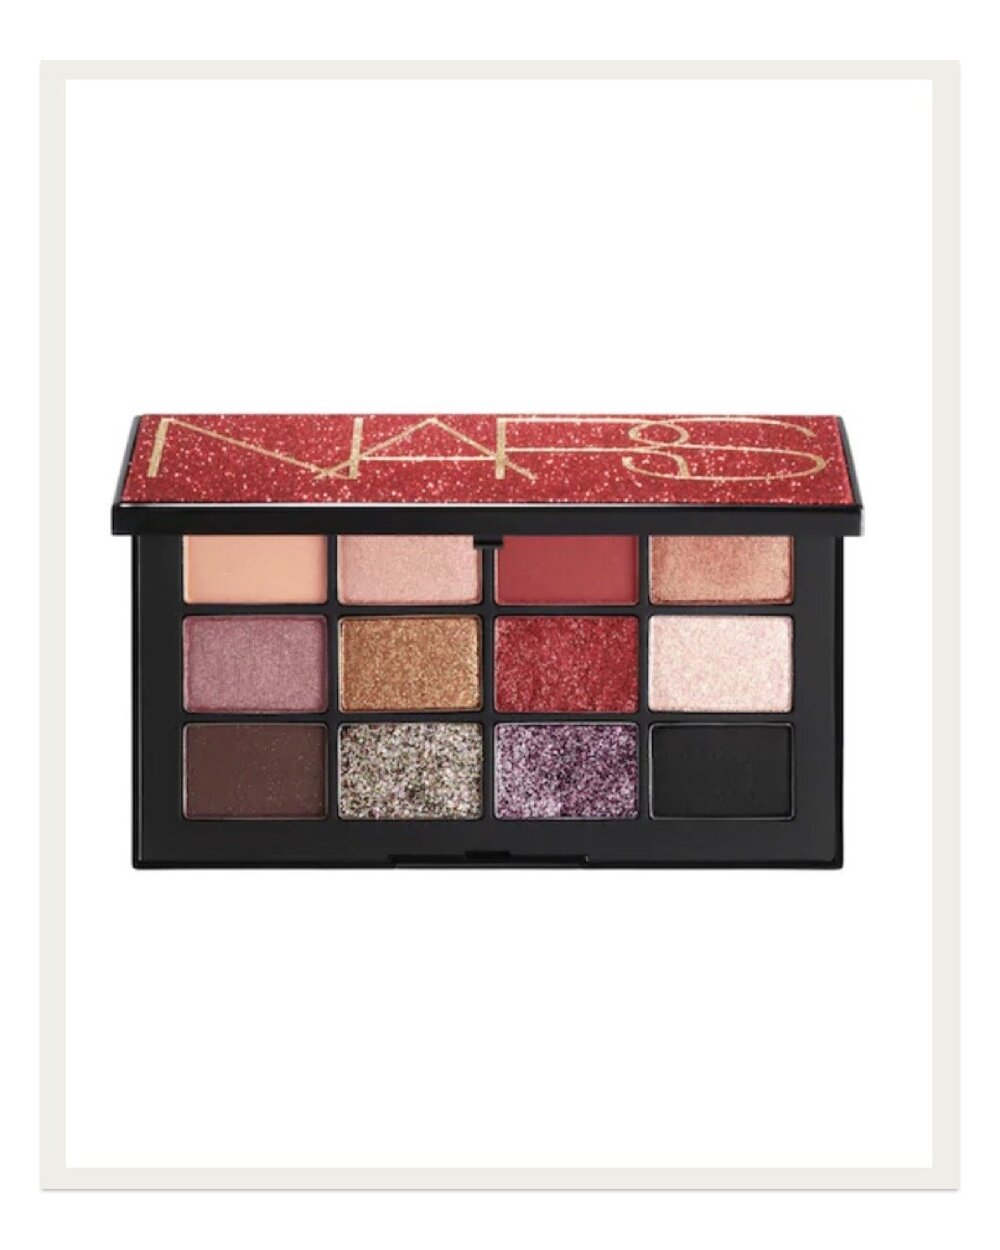 When I'm looking to get a little fancier, my new favorite product is this Inferno eyeshadow palette from Nars. I love the 70s inspired colors and sparkly options that glam up your look for nights on the town. I'm so excited to wear these shades to holiday parties!